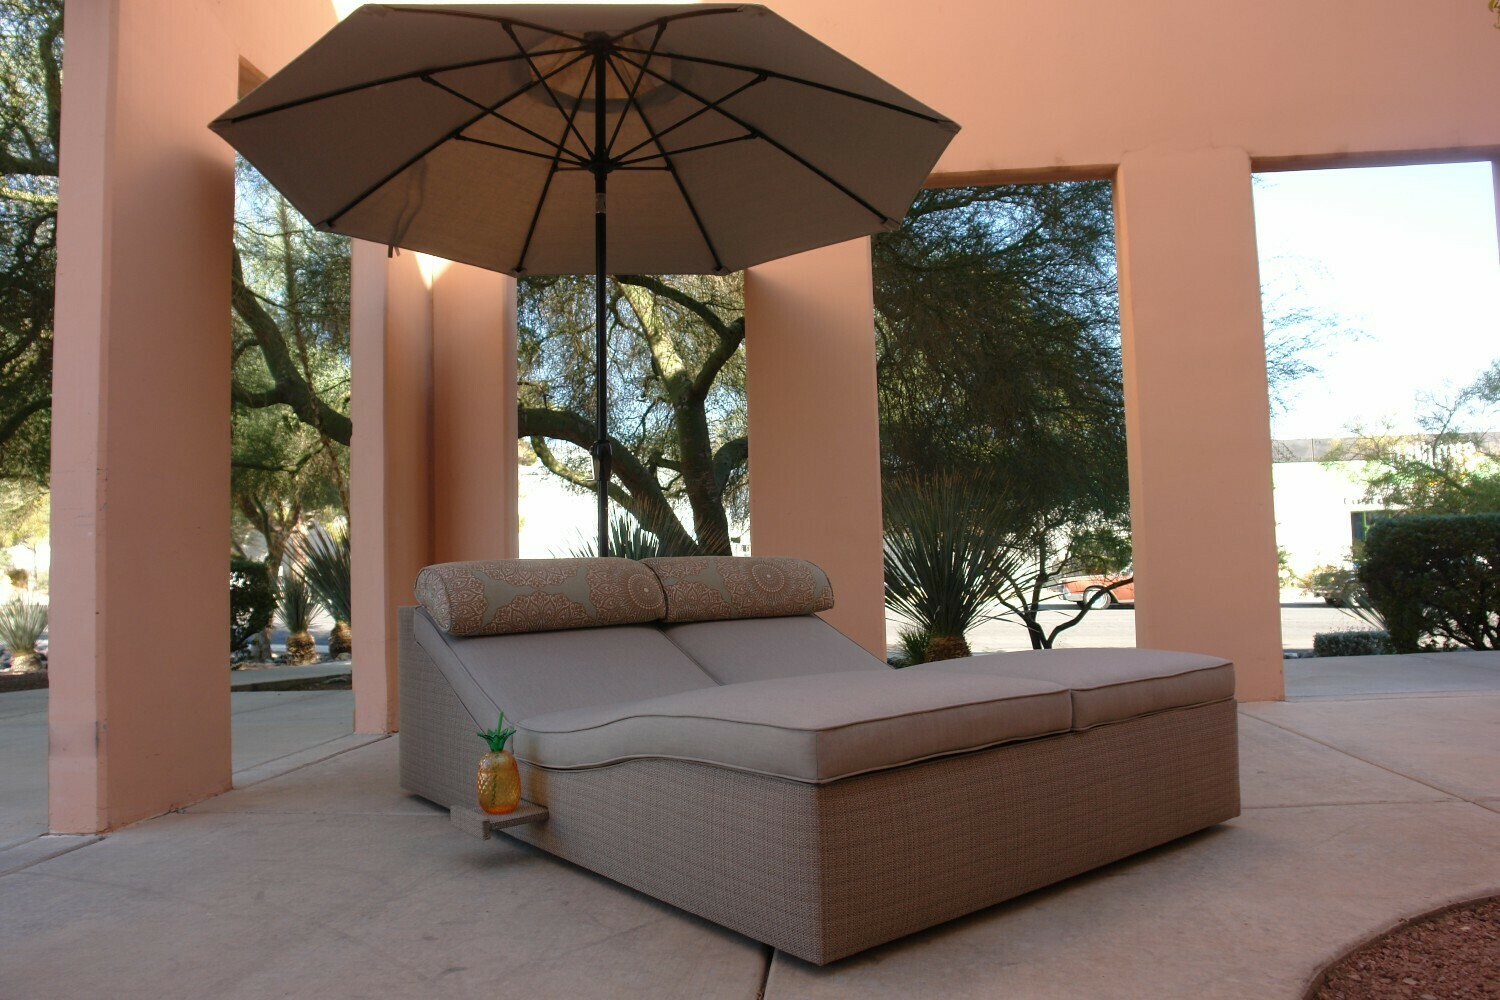 Cool Calm Composed Double Adjustable Lounger-Sample